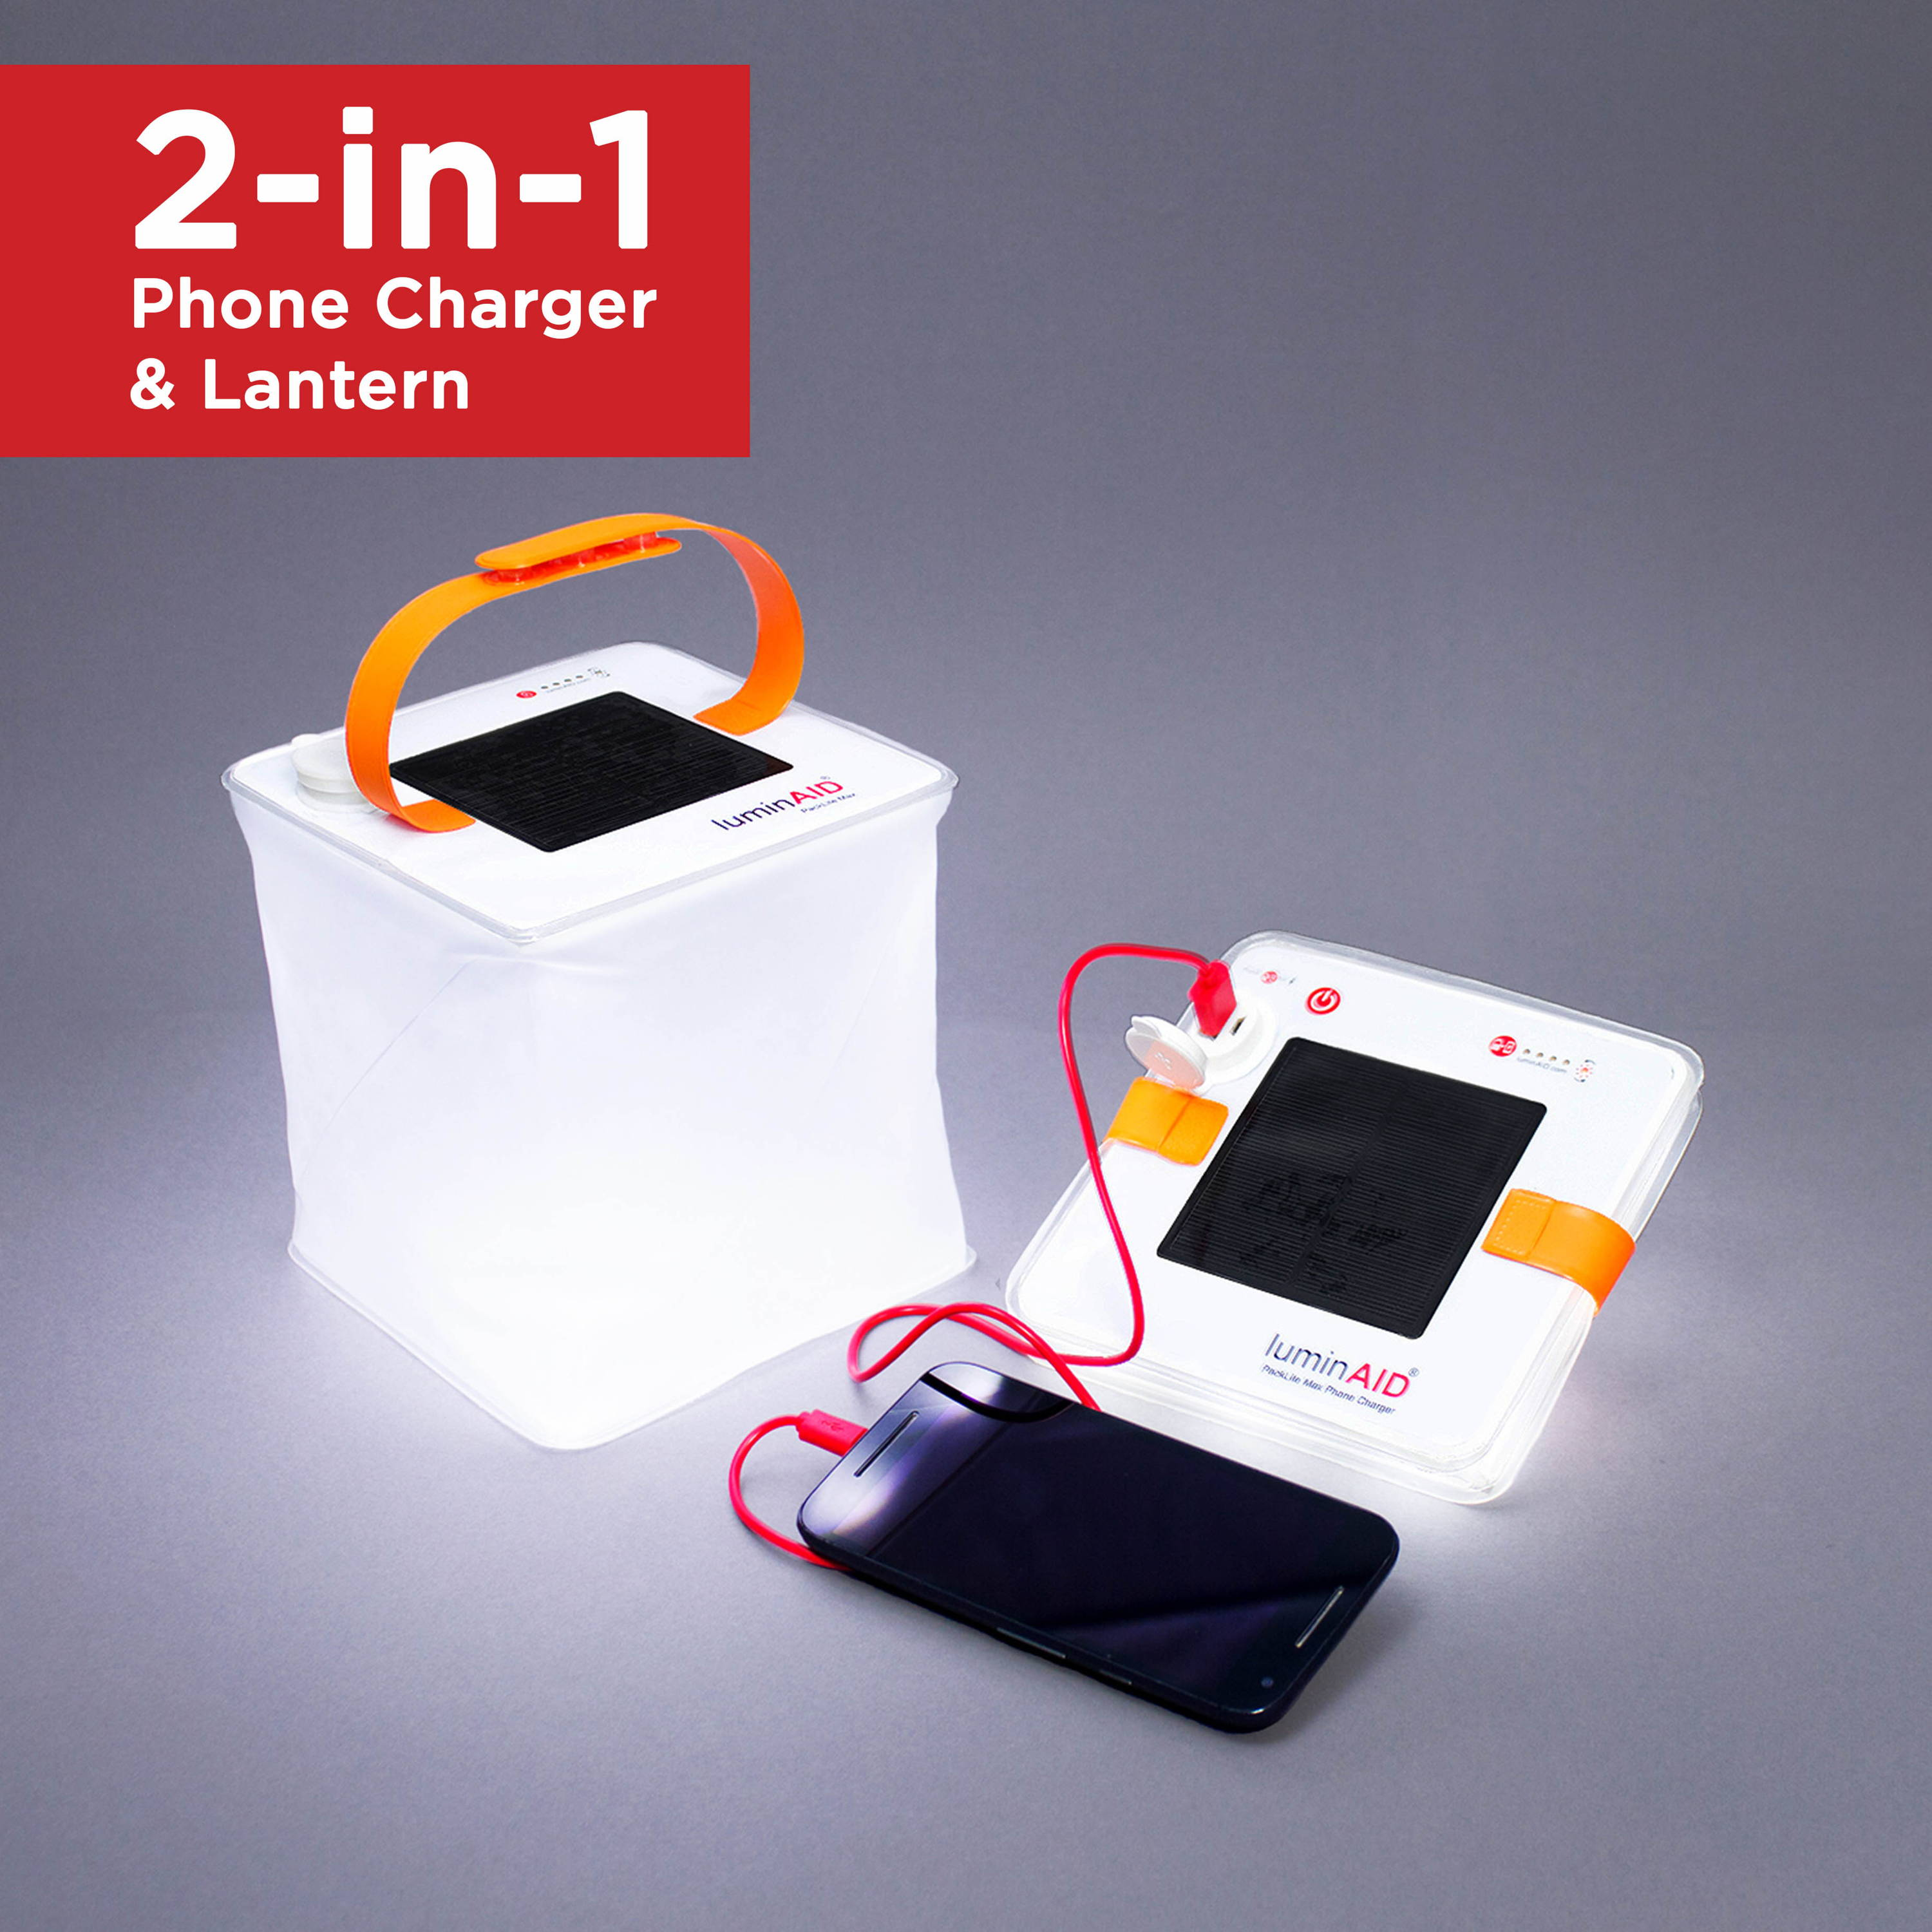 Packlite Max 2-in-1 phone charger.